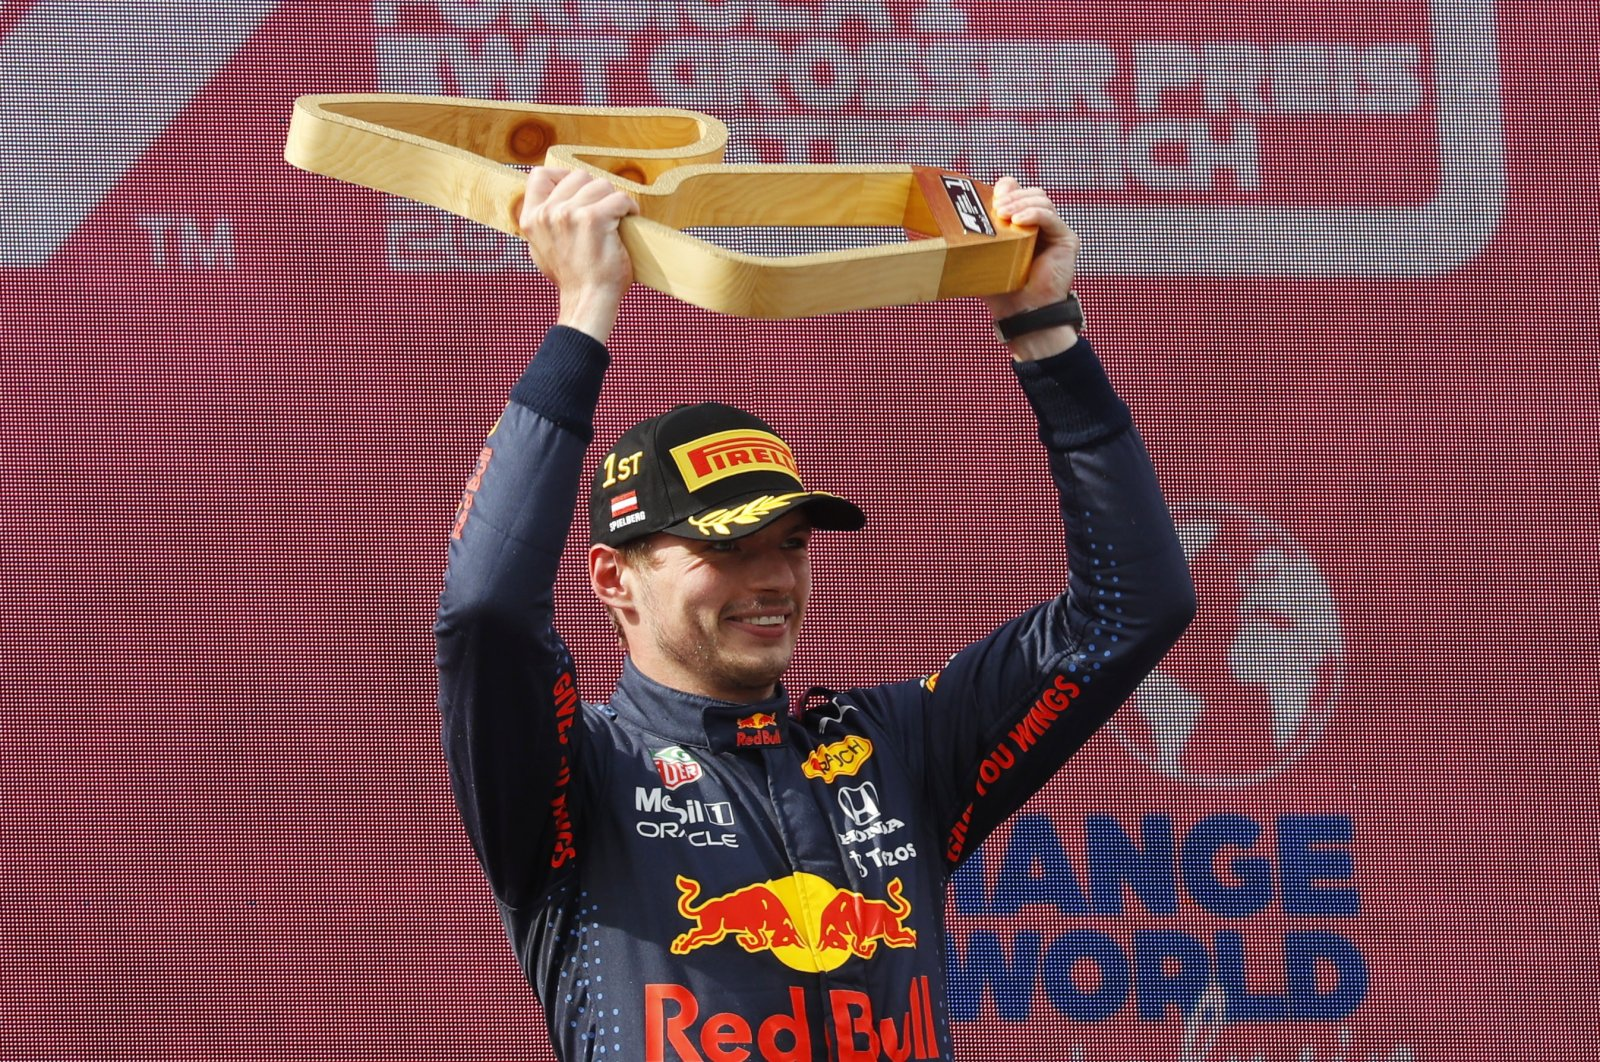 Red Bull's Max Verstappen celebrates winning with Formula One Austrian Grand Prix at the Red Bull Ring, Spielberg, Styria, Austria, July 4, 2021. (Reuters Photo)